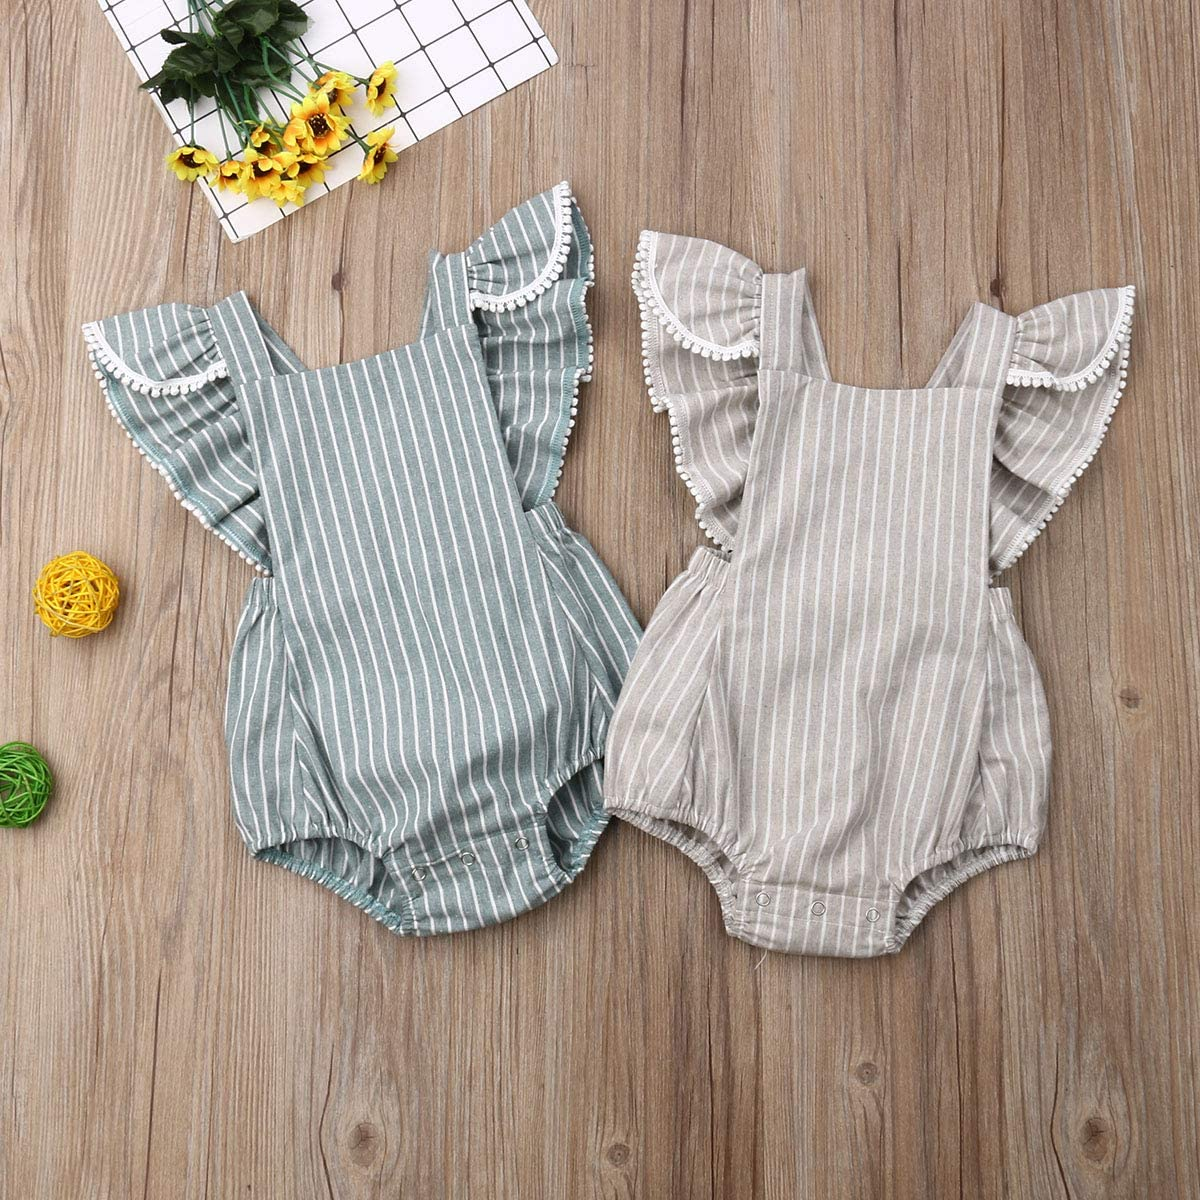 TSEXIEFOOFU Newborn Baby Boy Girl Cotton Line Sleeveless Straps Bodysuit Romper Jumpsuit Outfits Long Sleeve Clothes